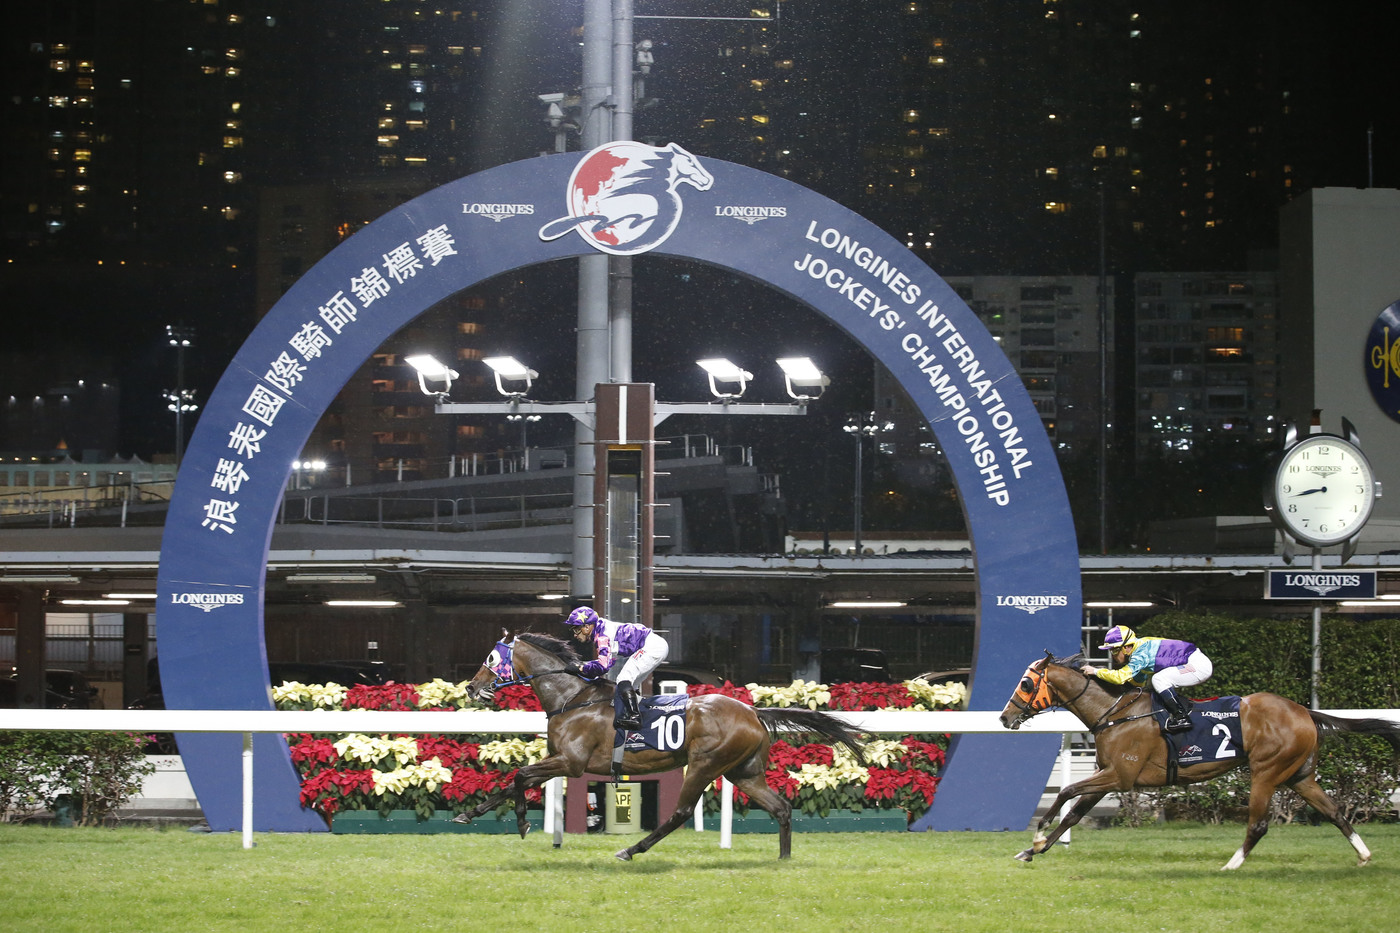 Longines Flat Racing Event: Silvestre de Sousa emerges victorious in the Longines International Jockeys' Championship in Hong Kong 3